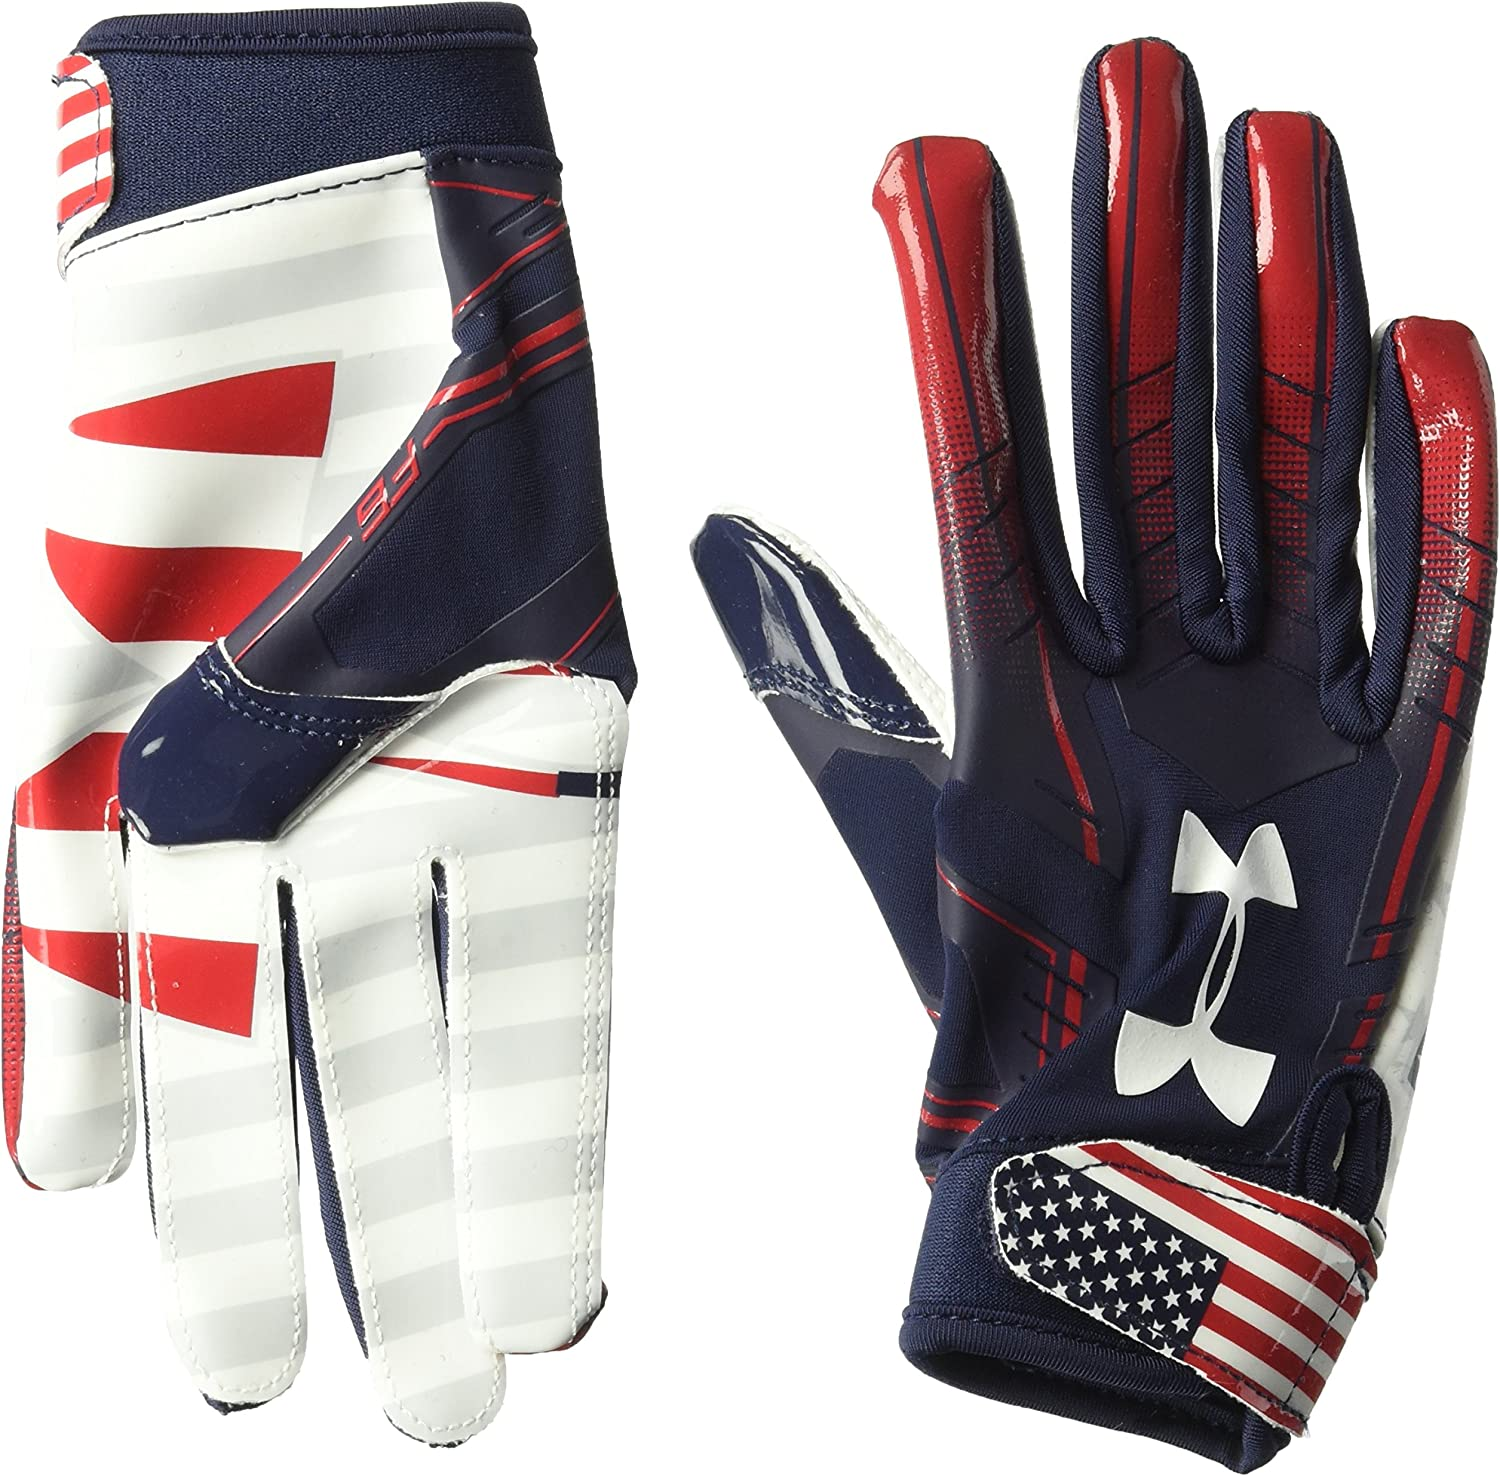 Degenerar Gobernar Leo un libro  Amazon.com : Under Armour Boys F6 Le Gloves : Clothing